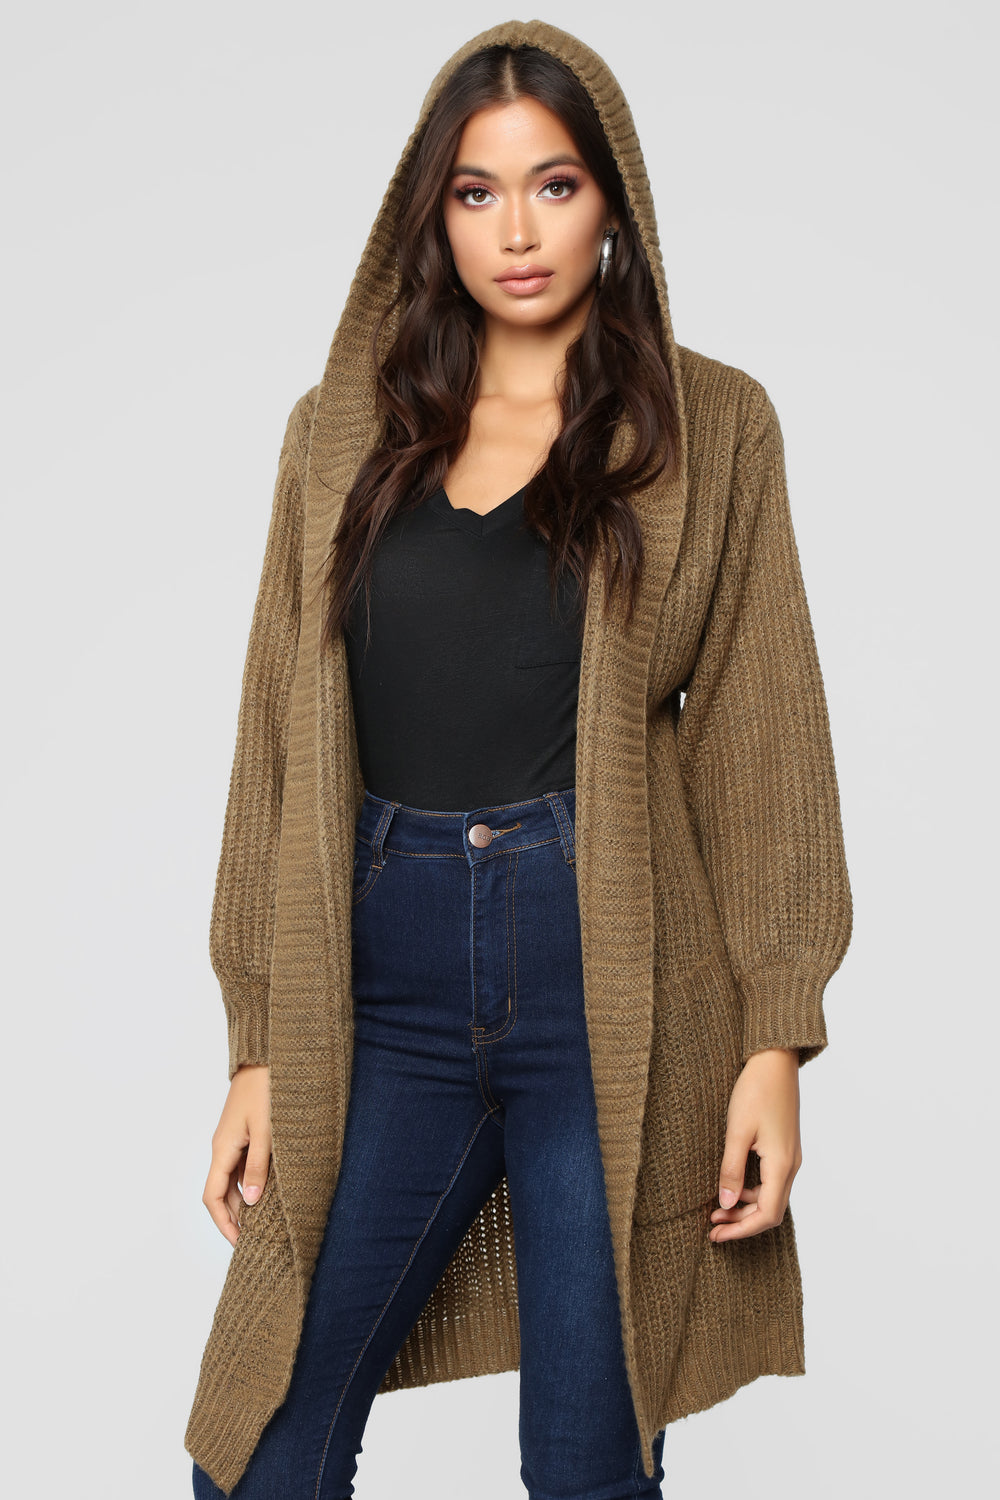 Too Close Cardigan - Olive